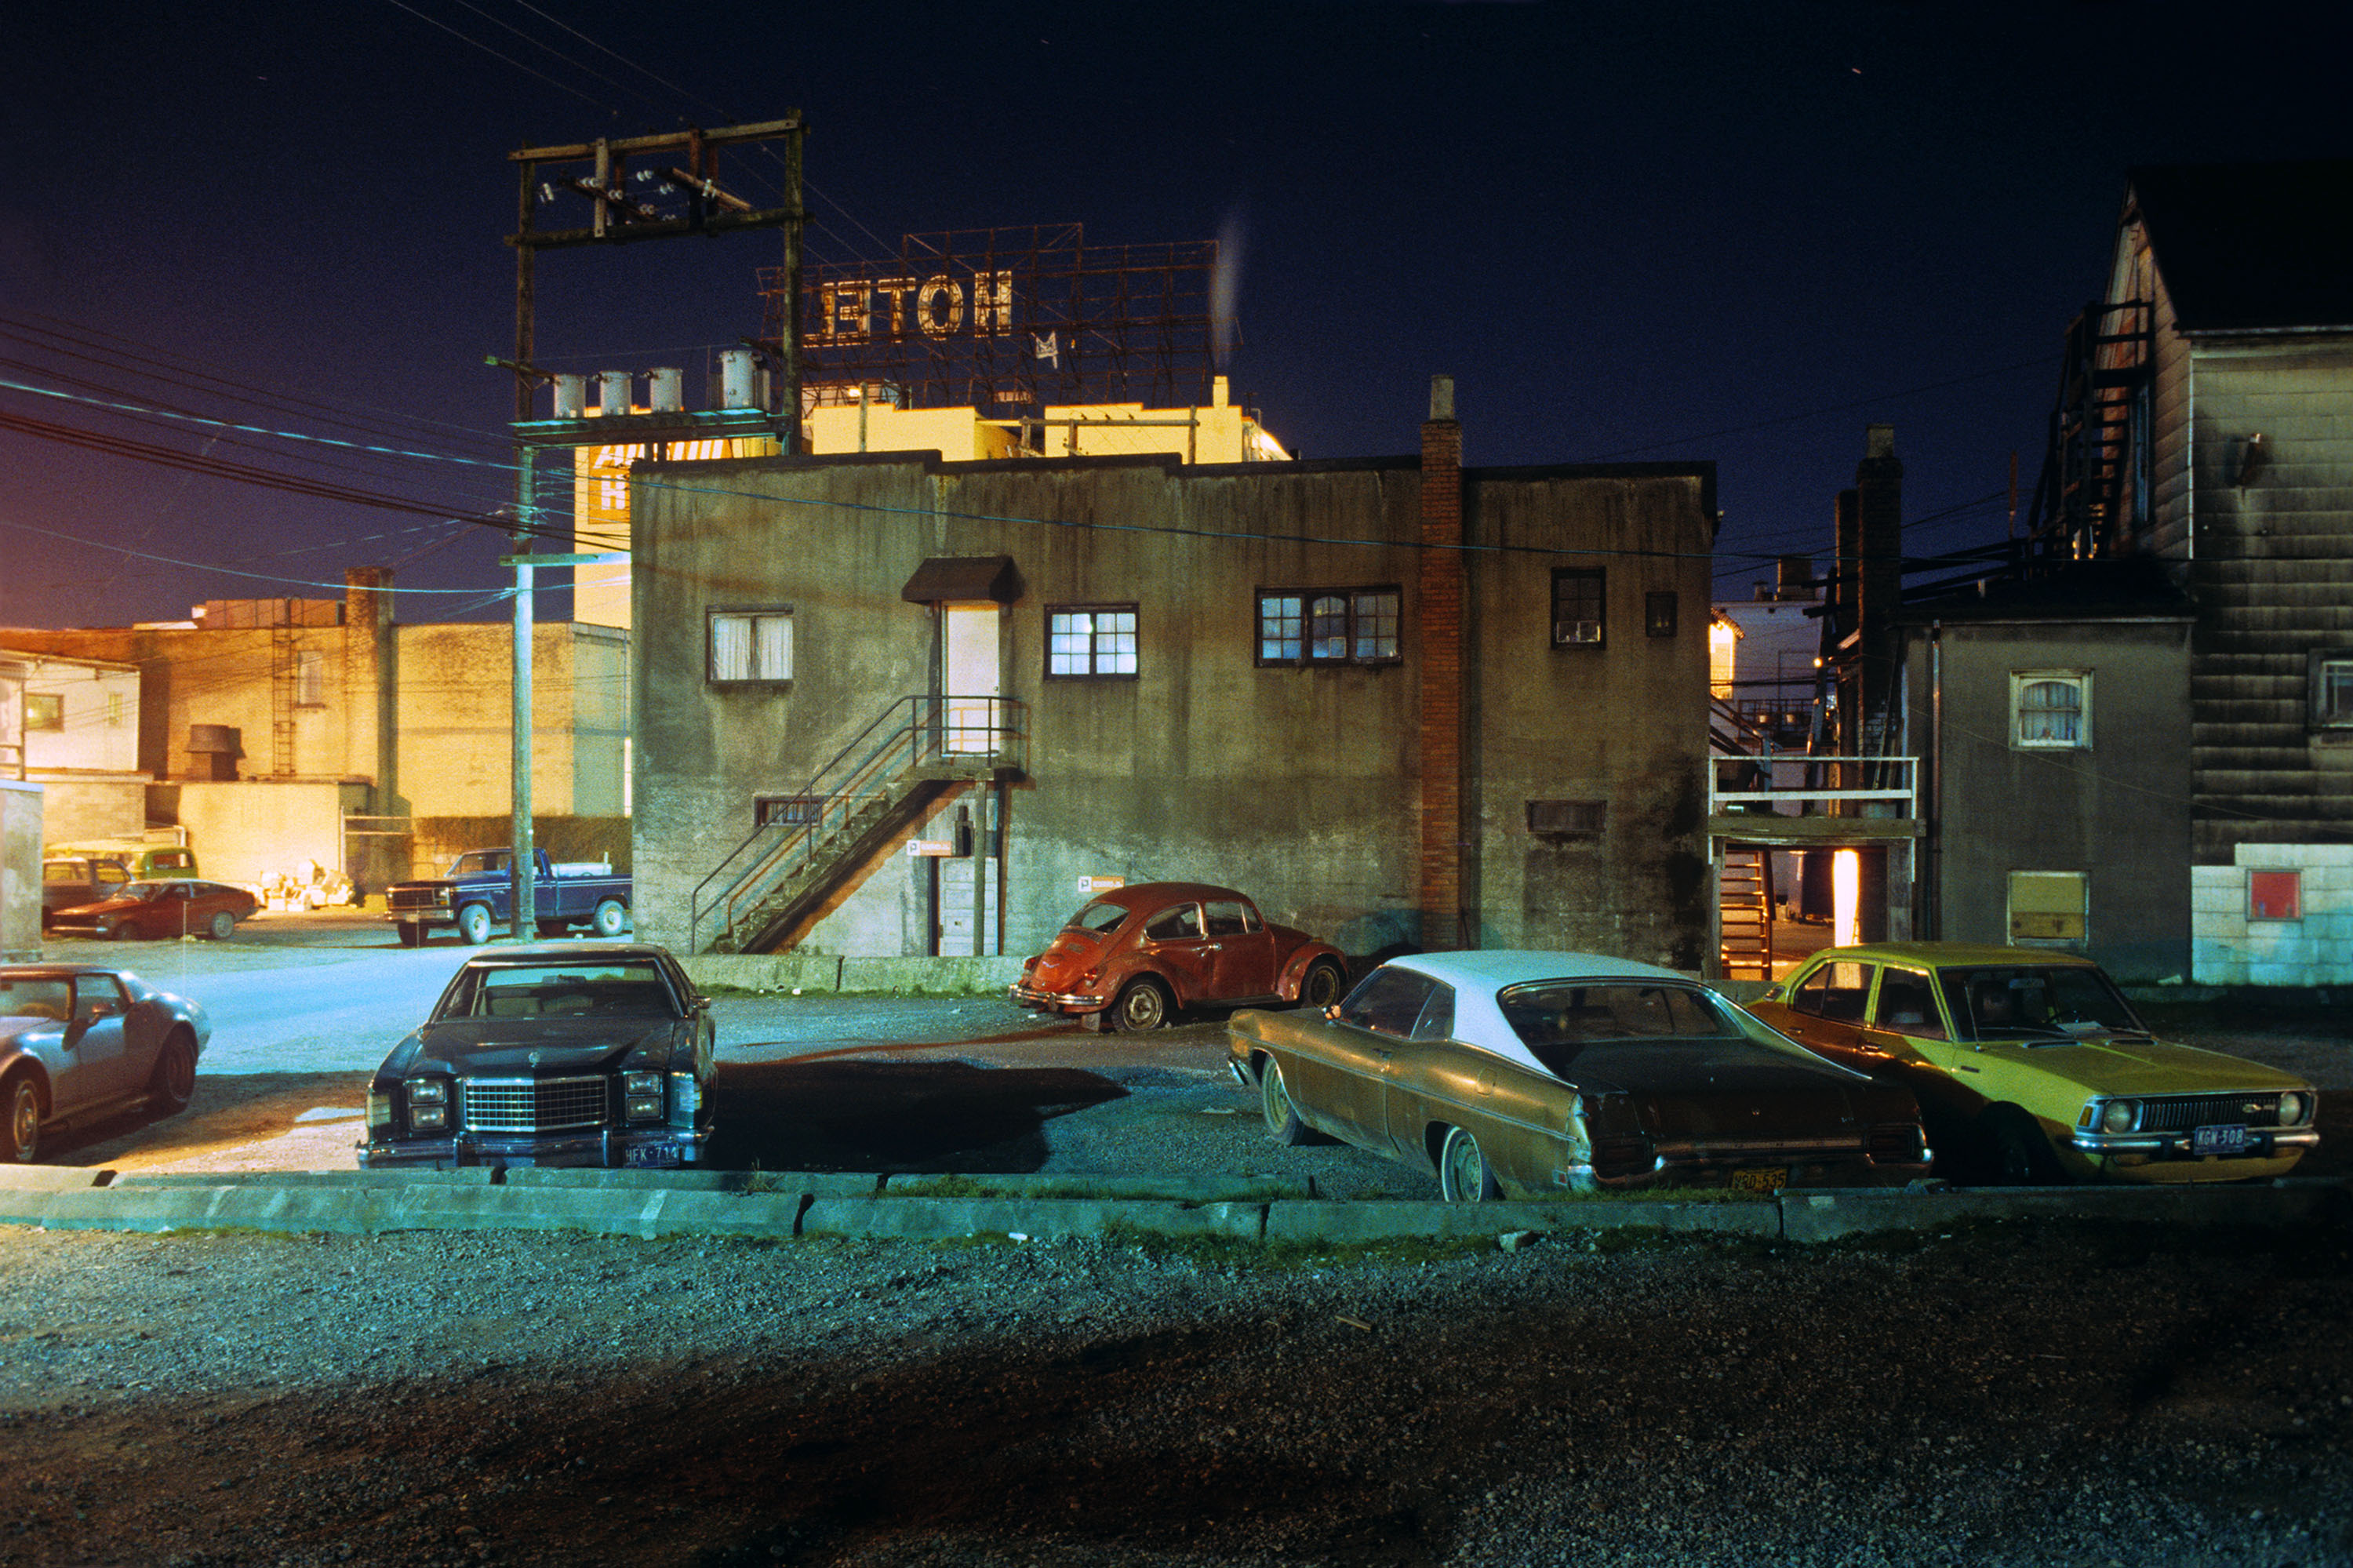 'Upaved Lot' by Greg Girard